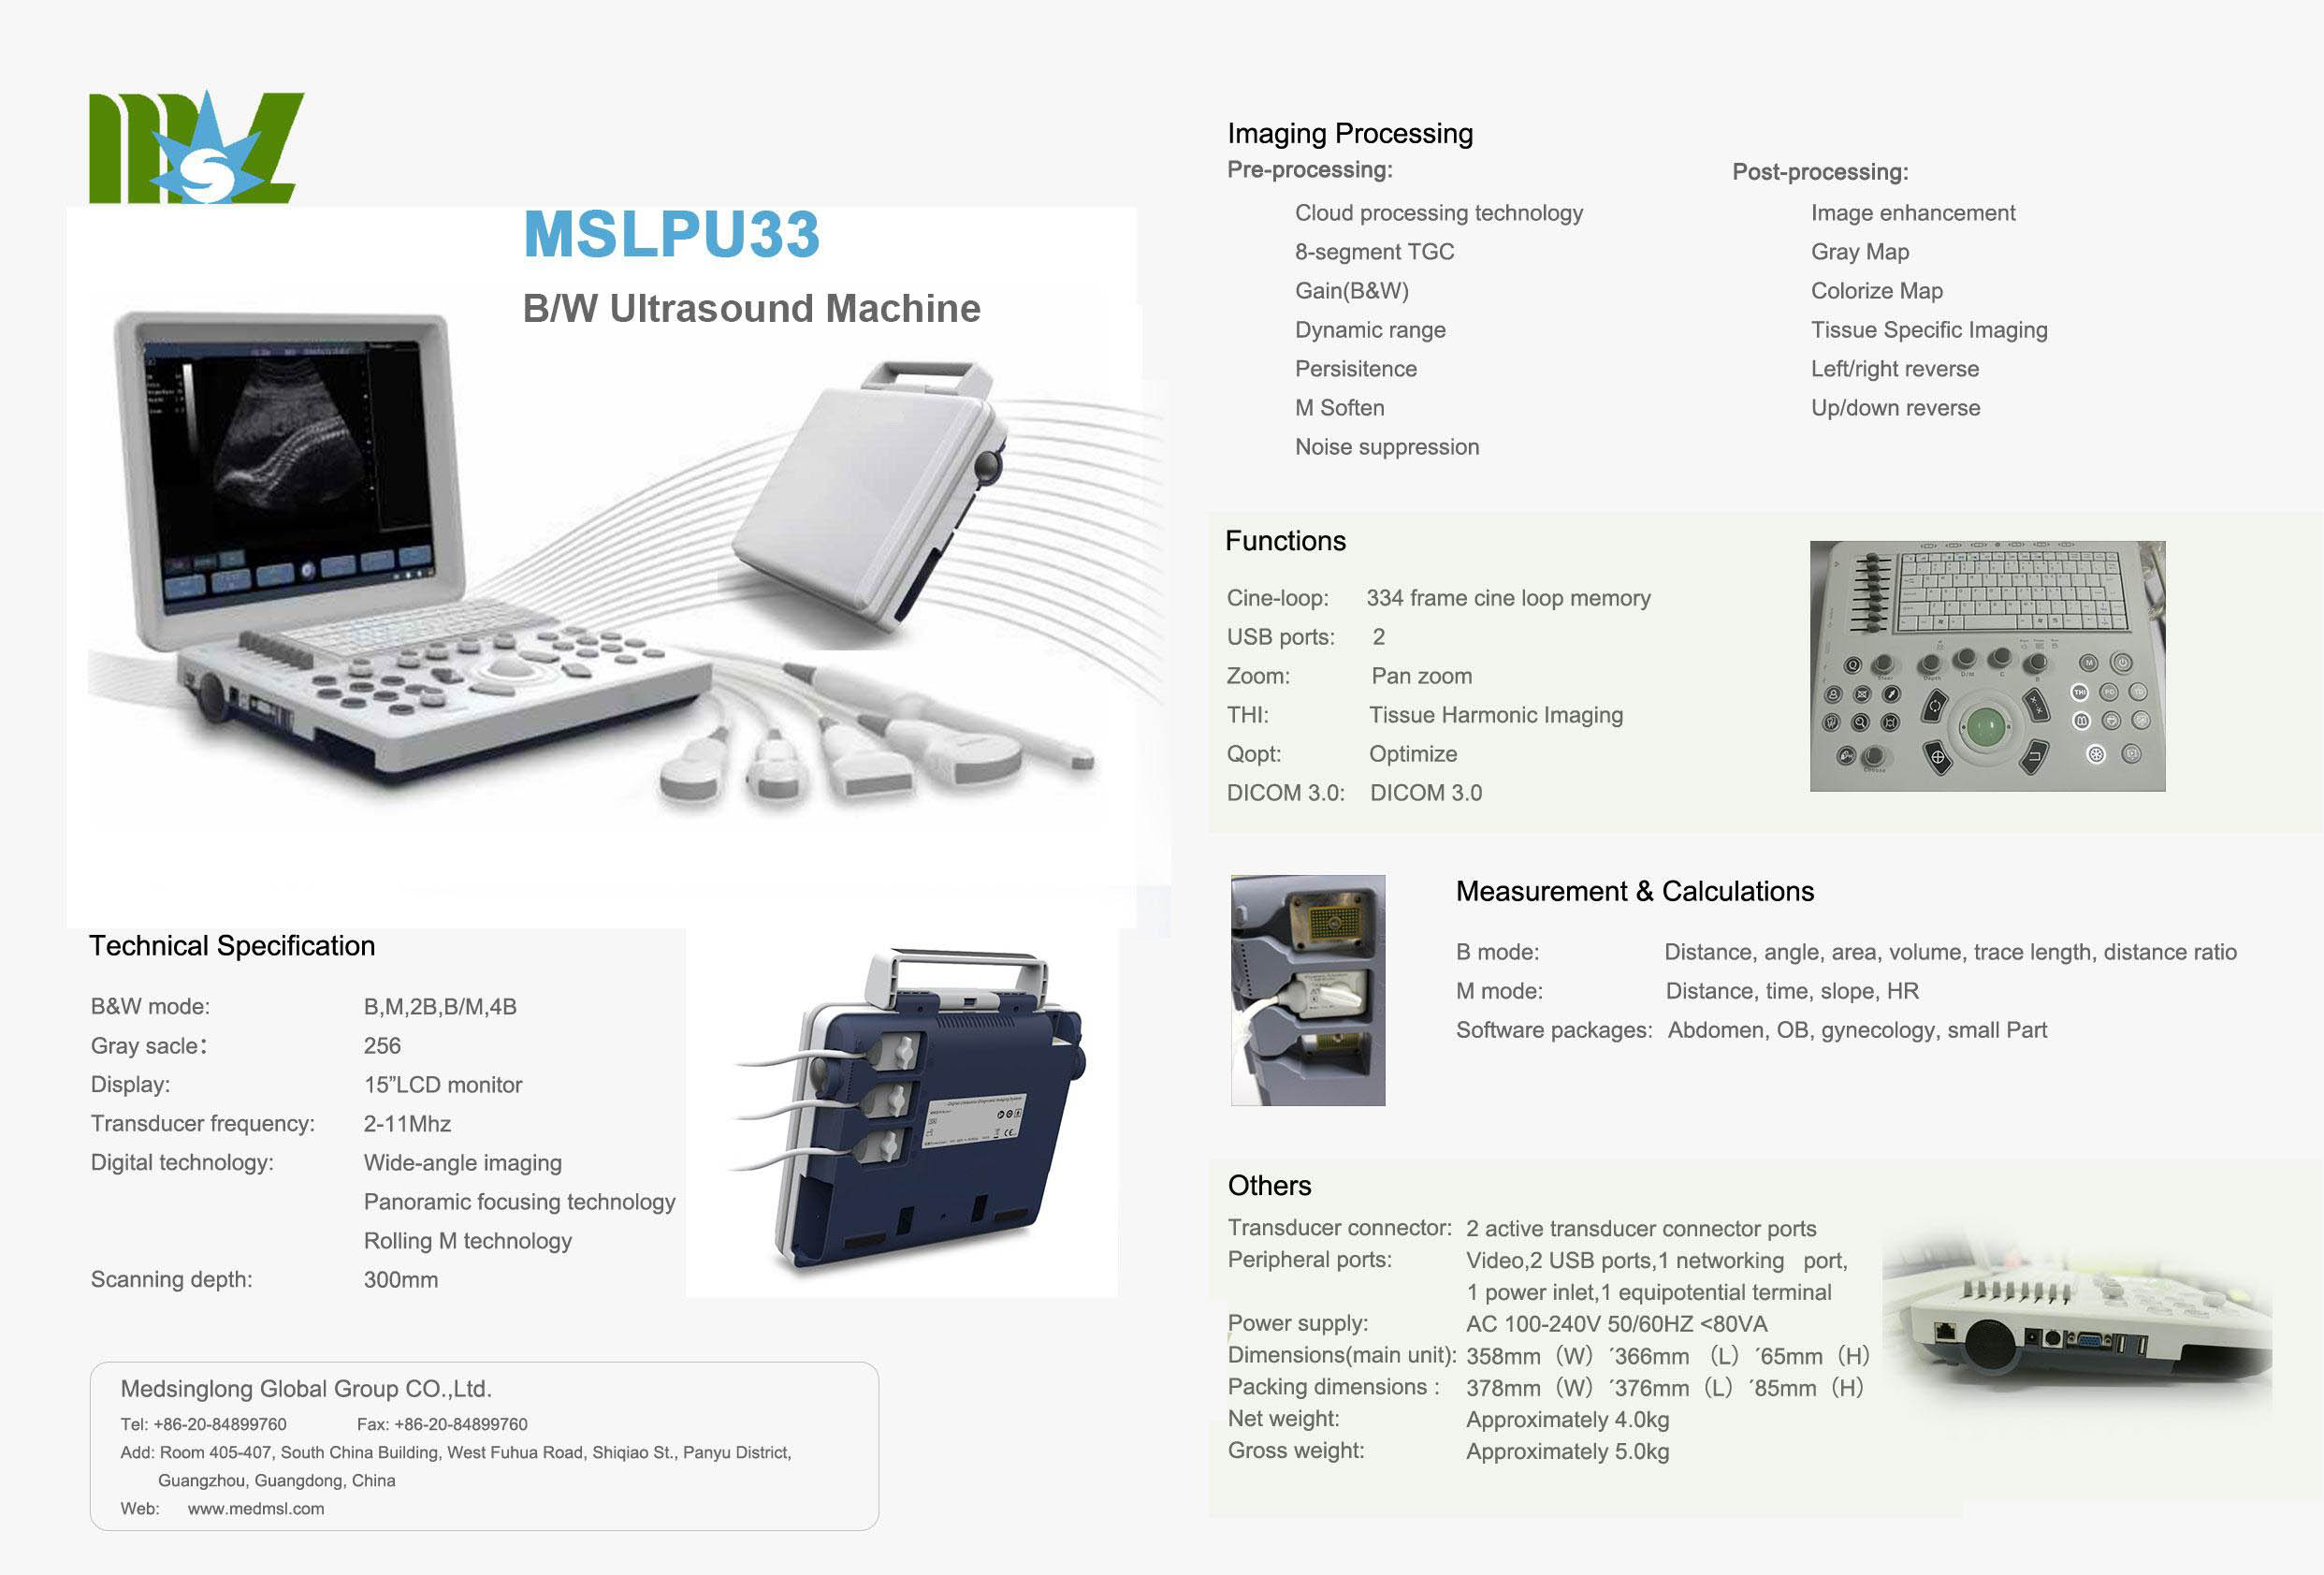 MSL ultrasound machine MSLPU33